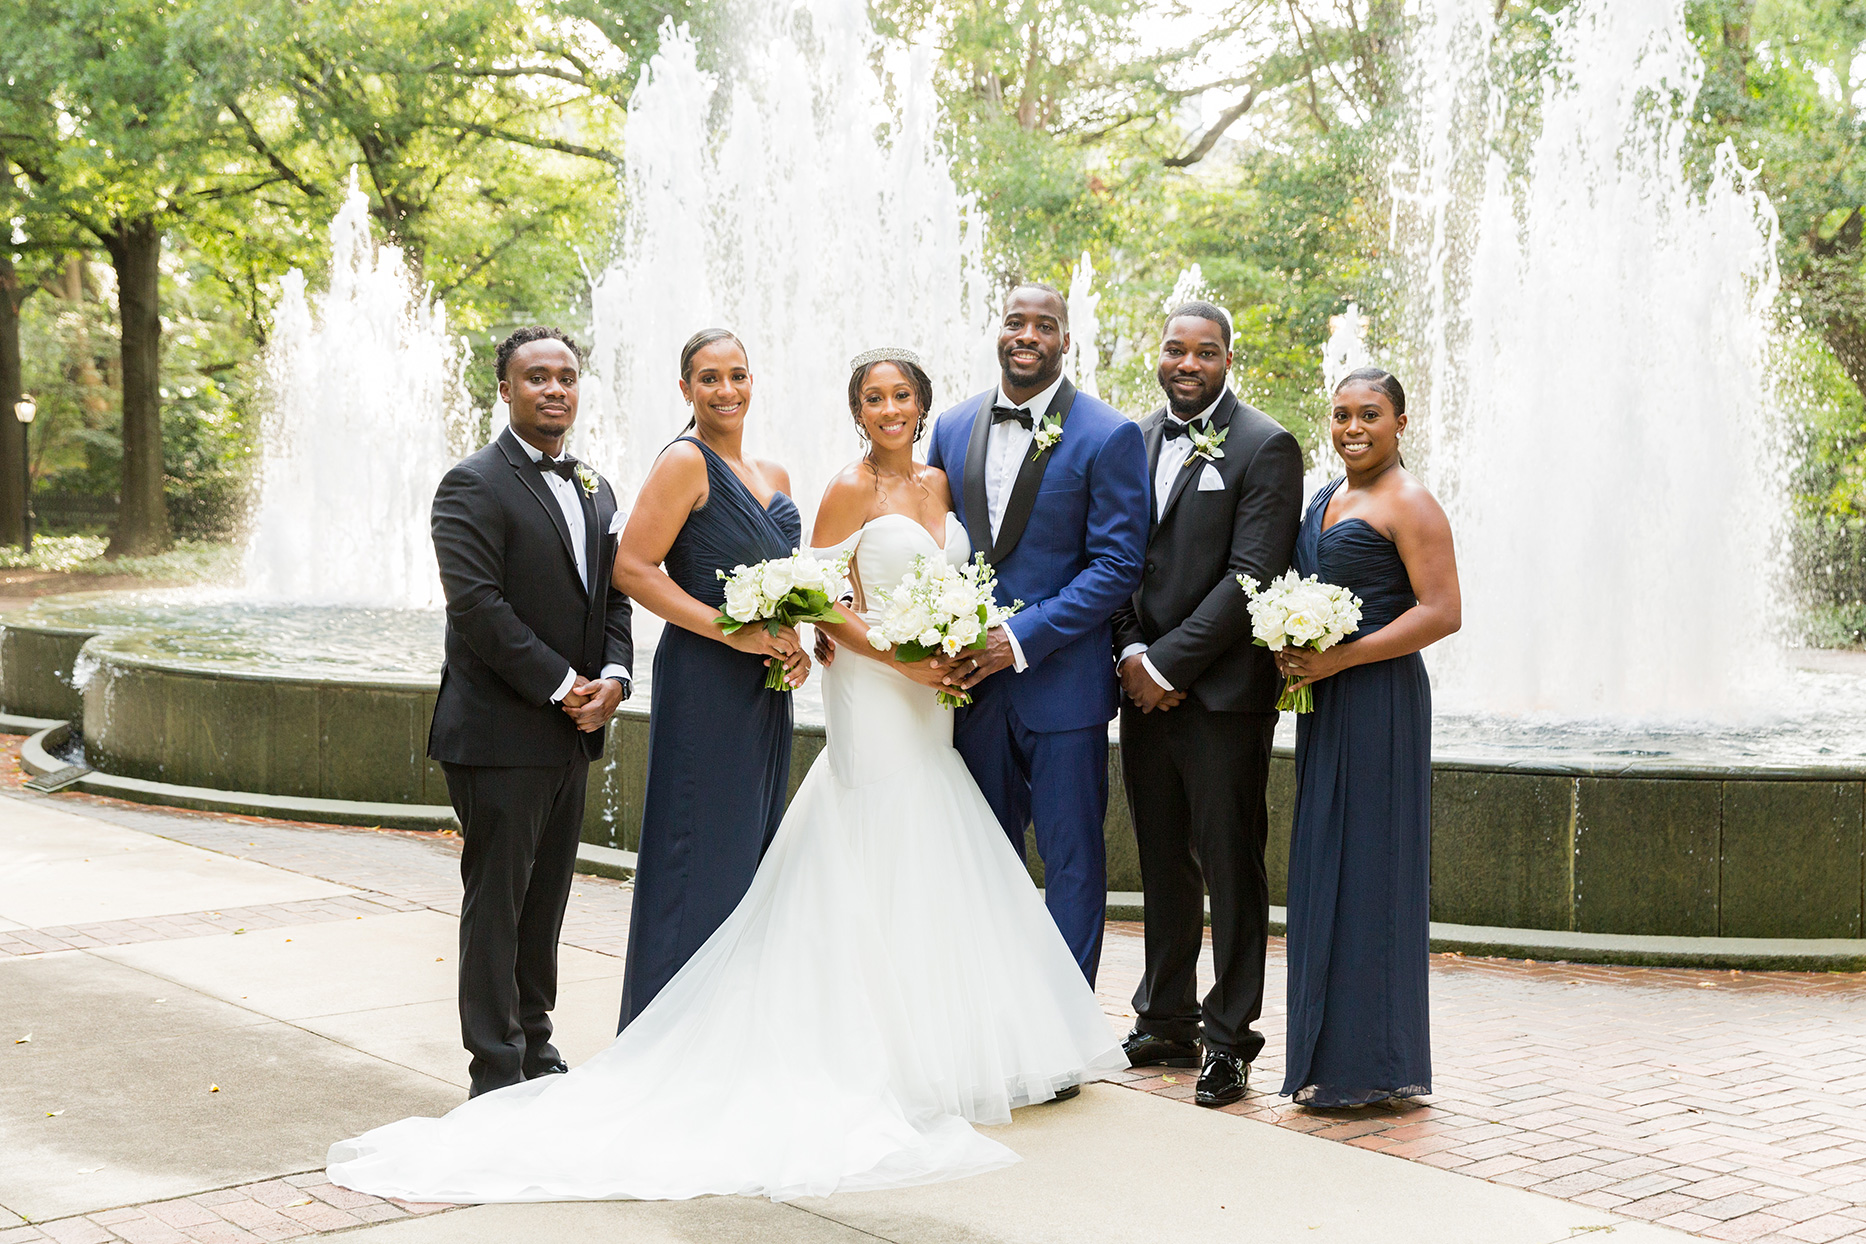 bride and groom smiling with their wedding party attendants